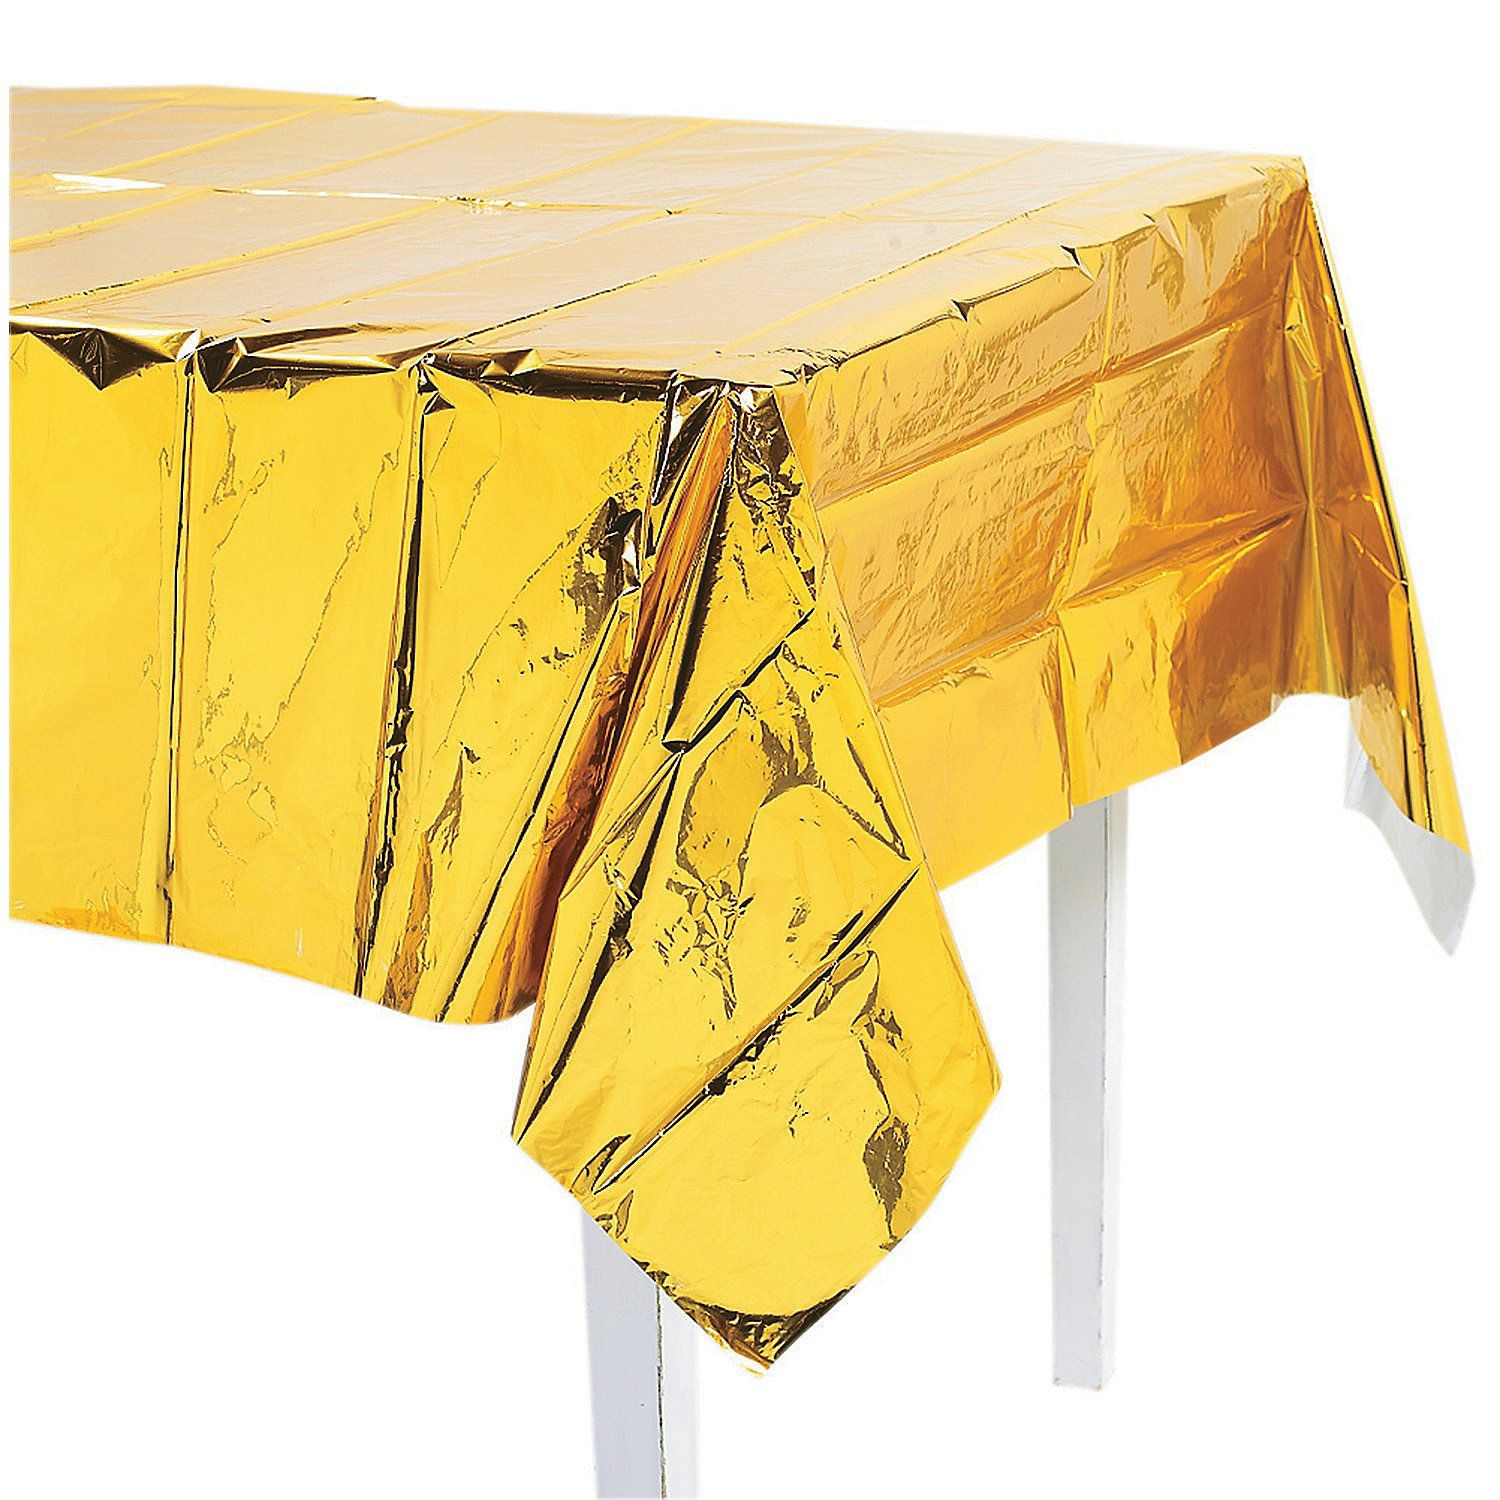 Unique Gold Foil Tablecover